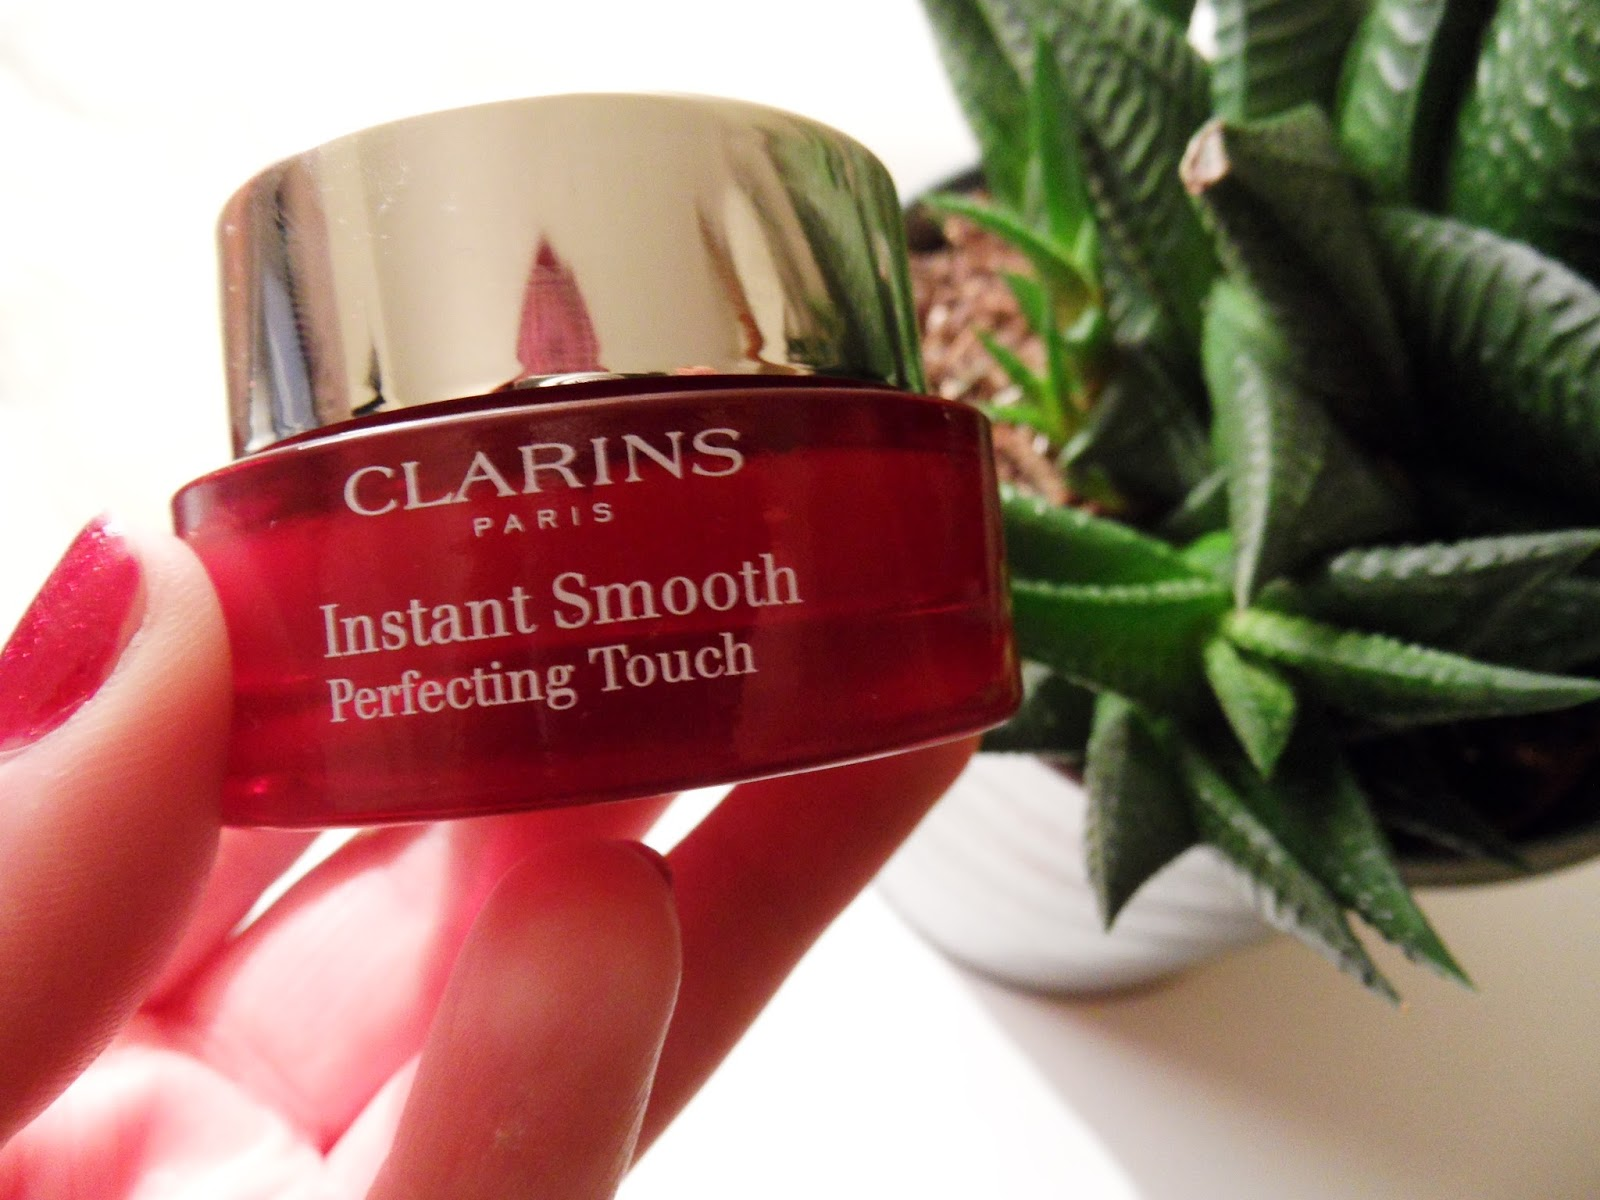 CLARINS INSTANT SMOOTH PERFECTING TOUCH : REVIEW eyelinerflicks.com